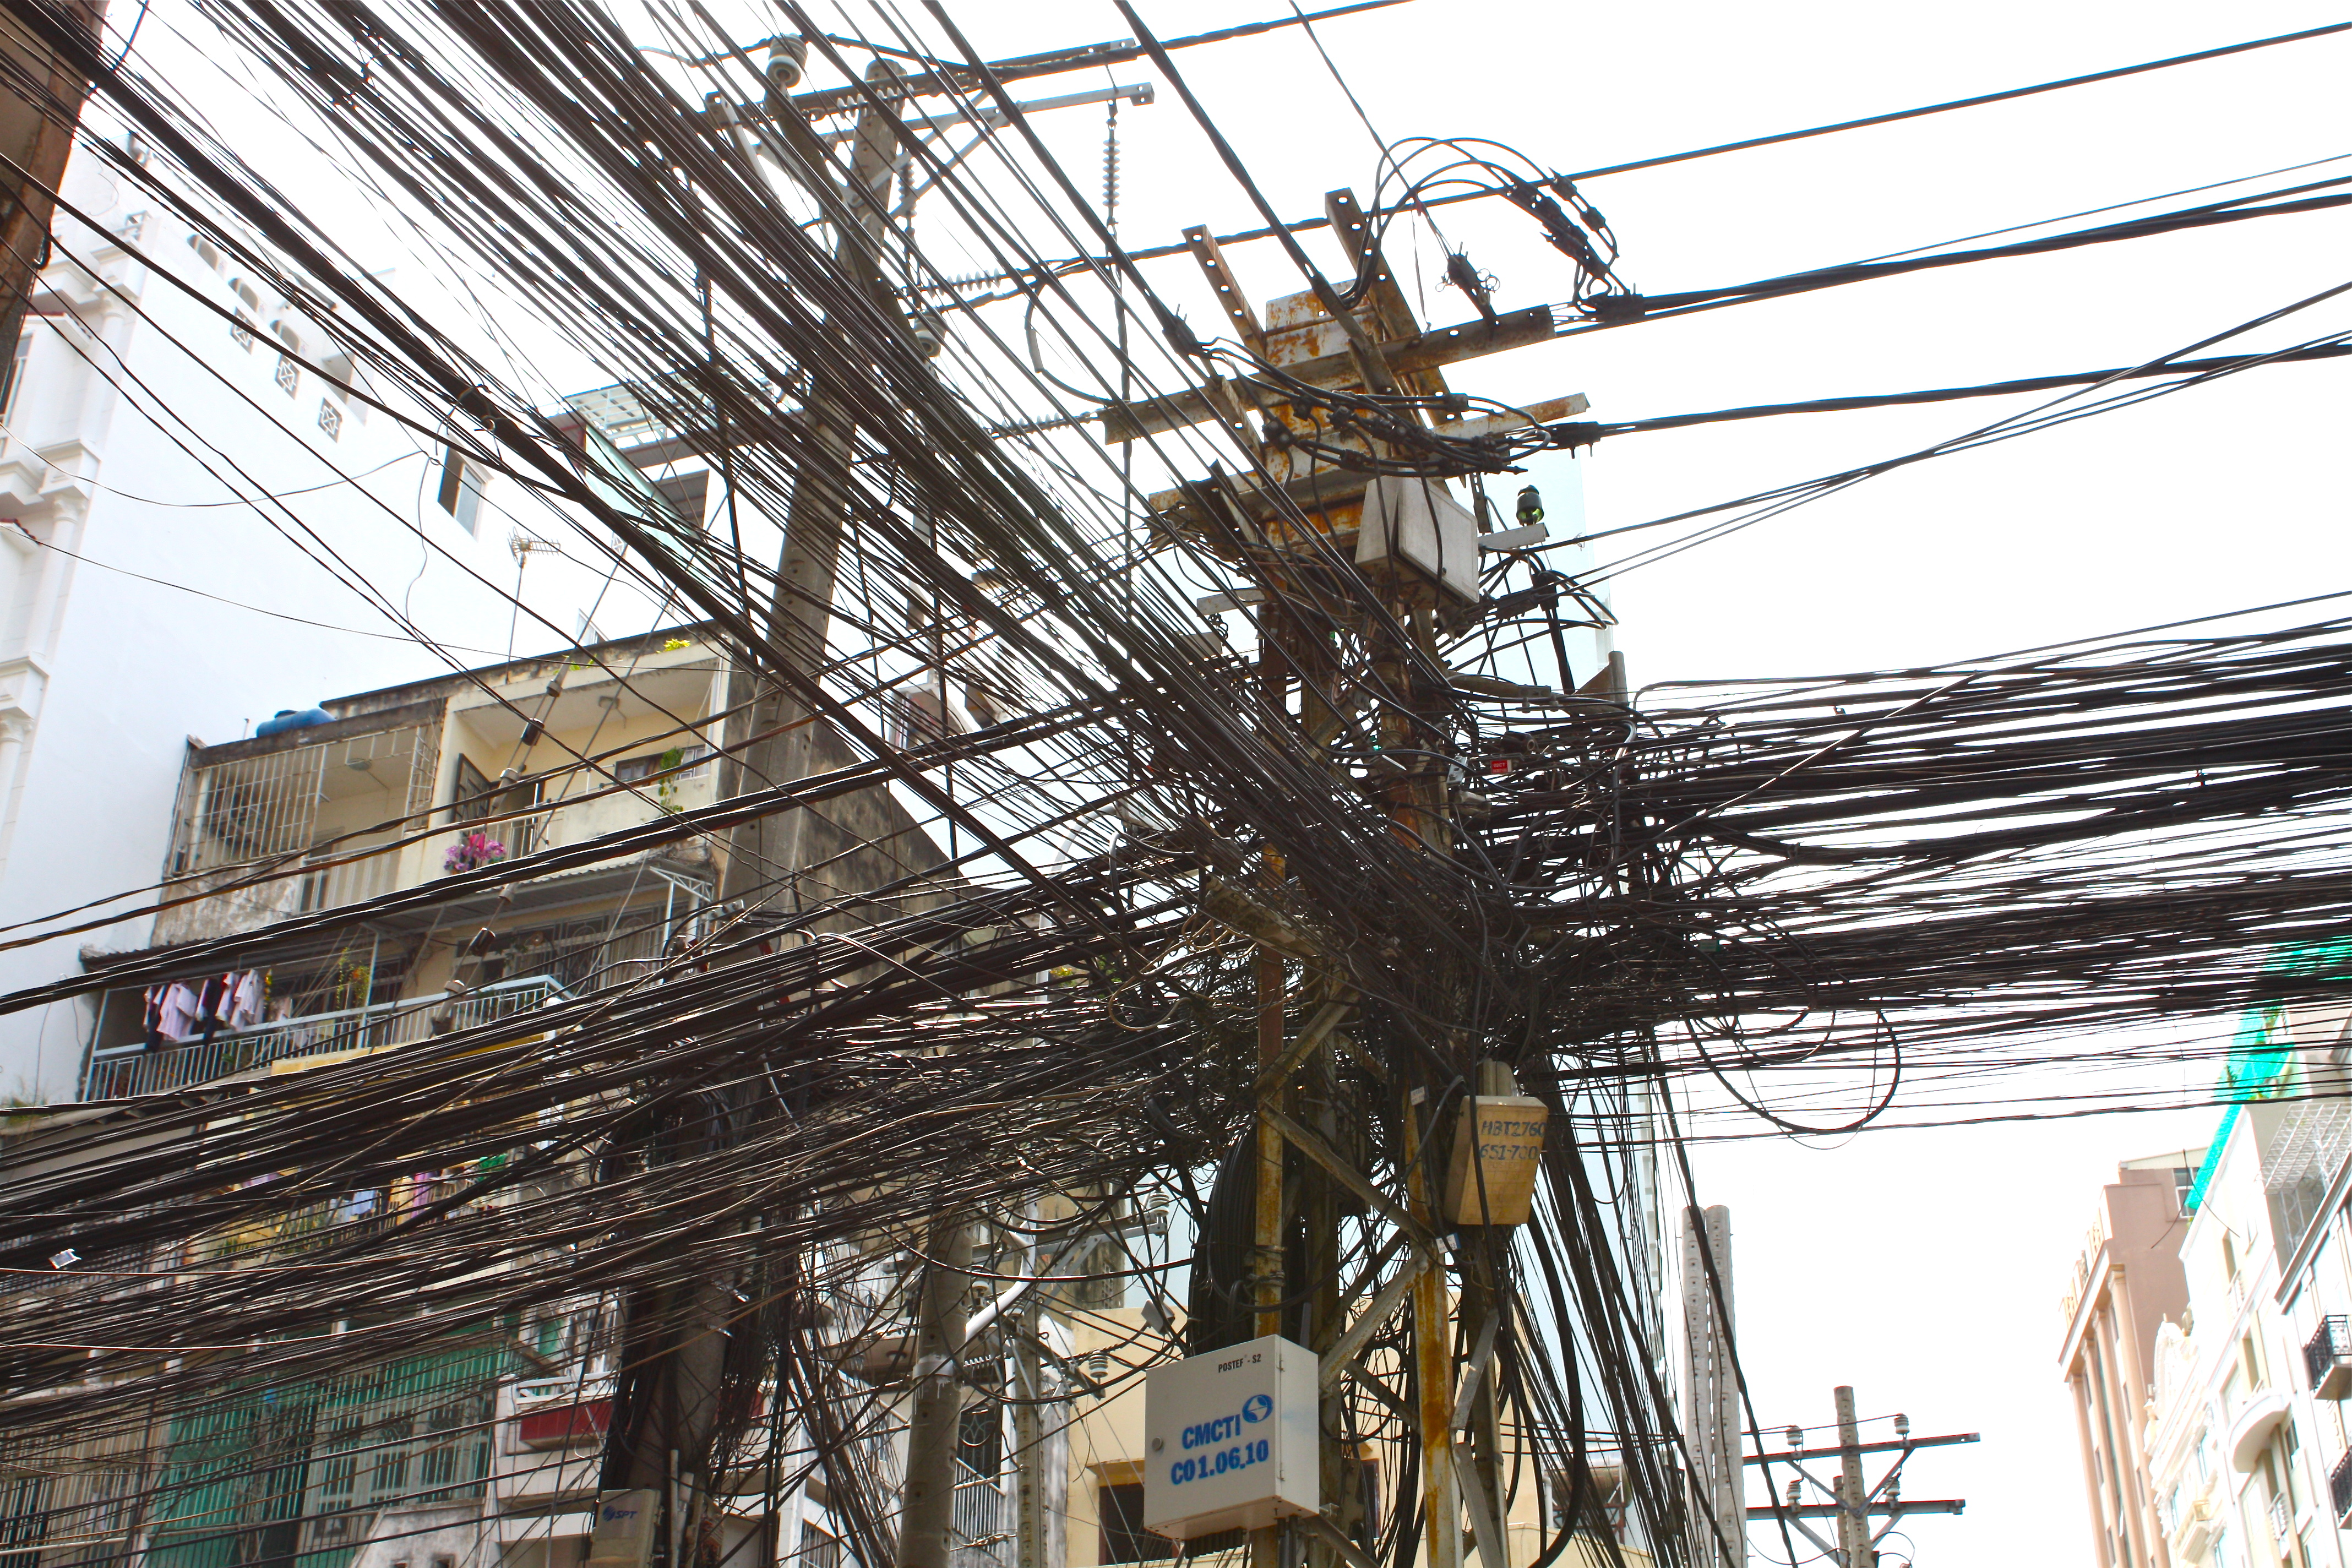 Power Lines in India